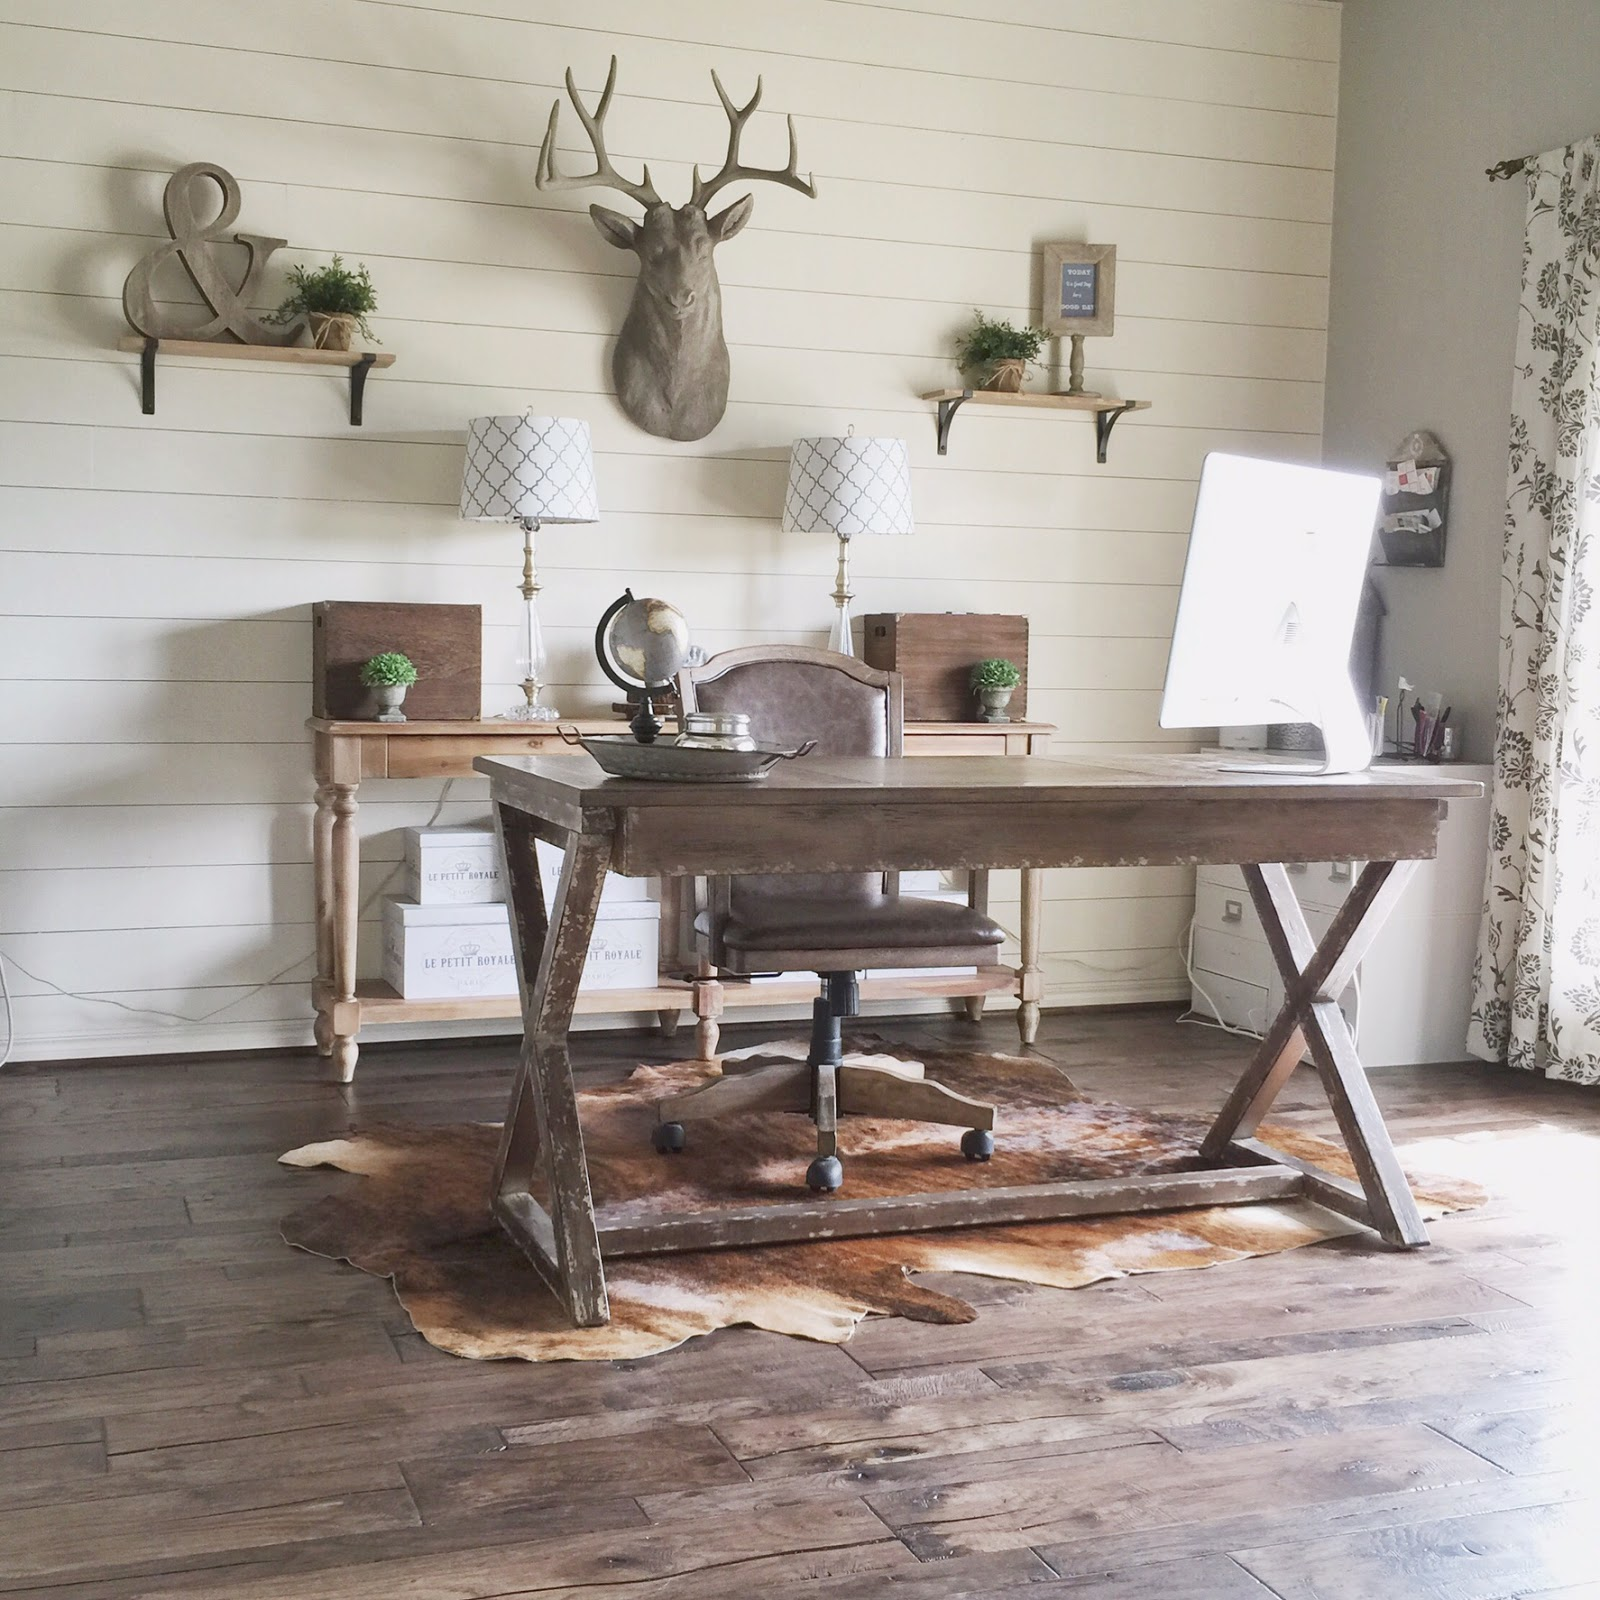 Diy Home Design Ideas Com: Rustic Modern Home Office Design